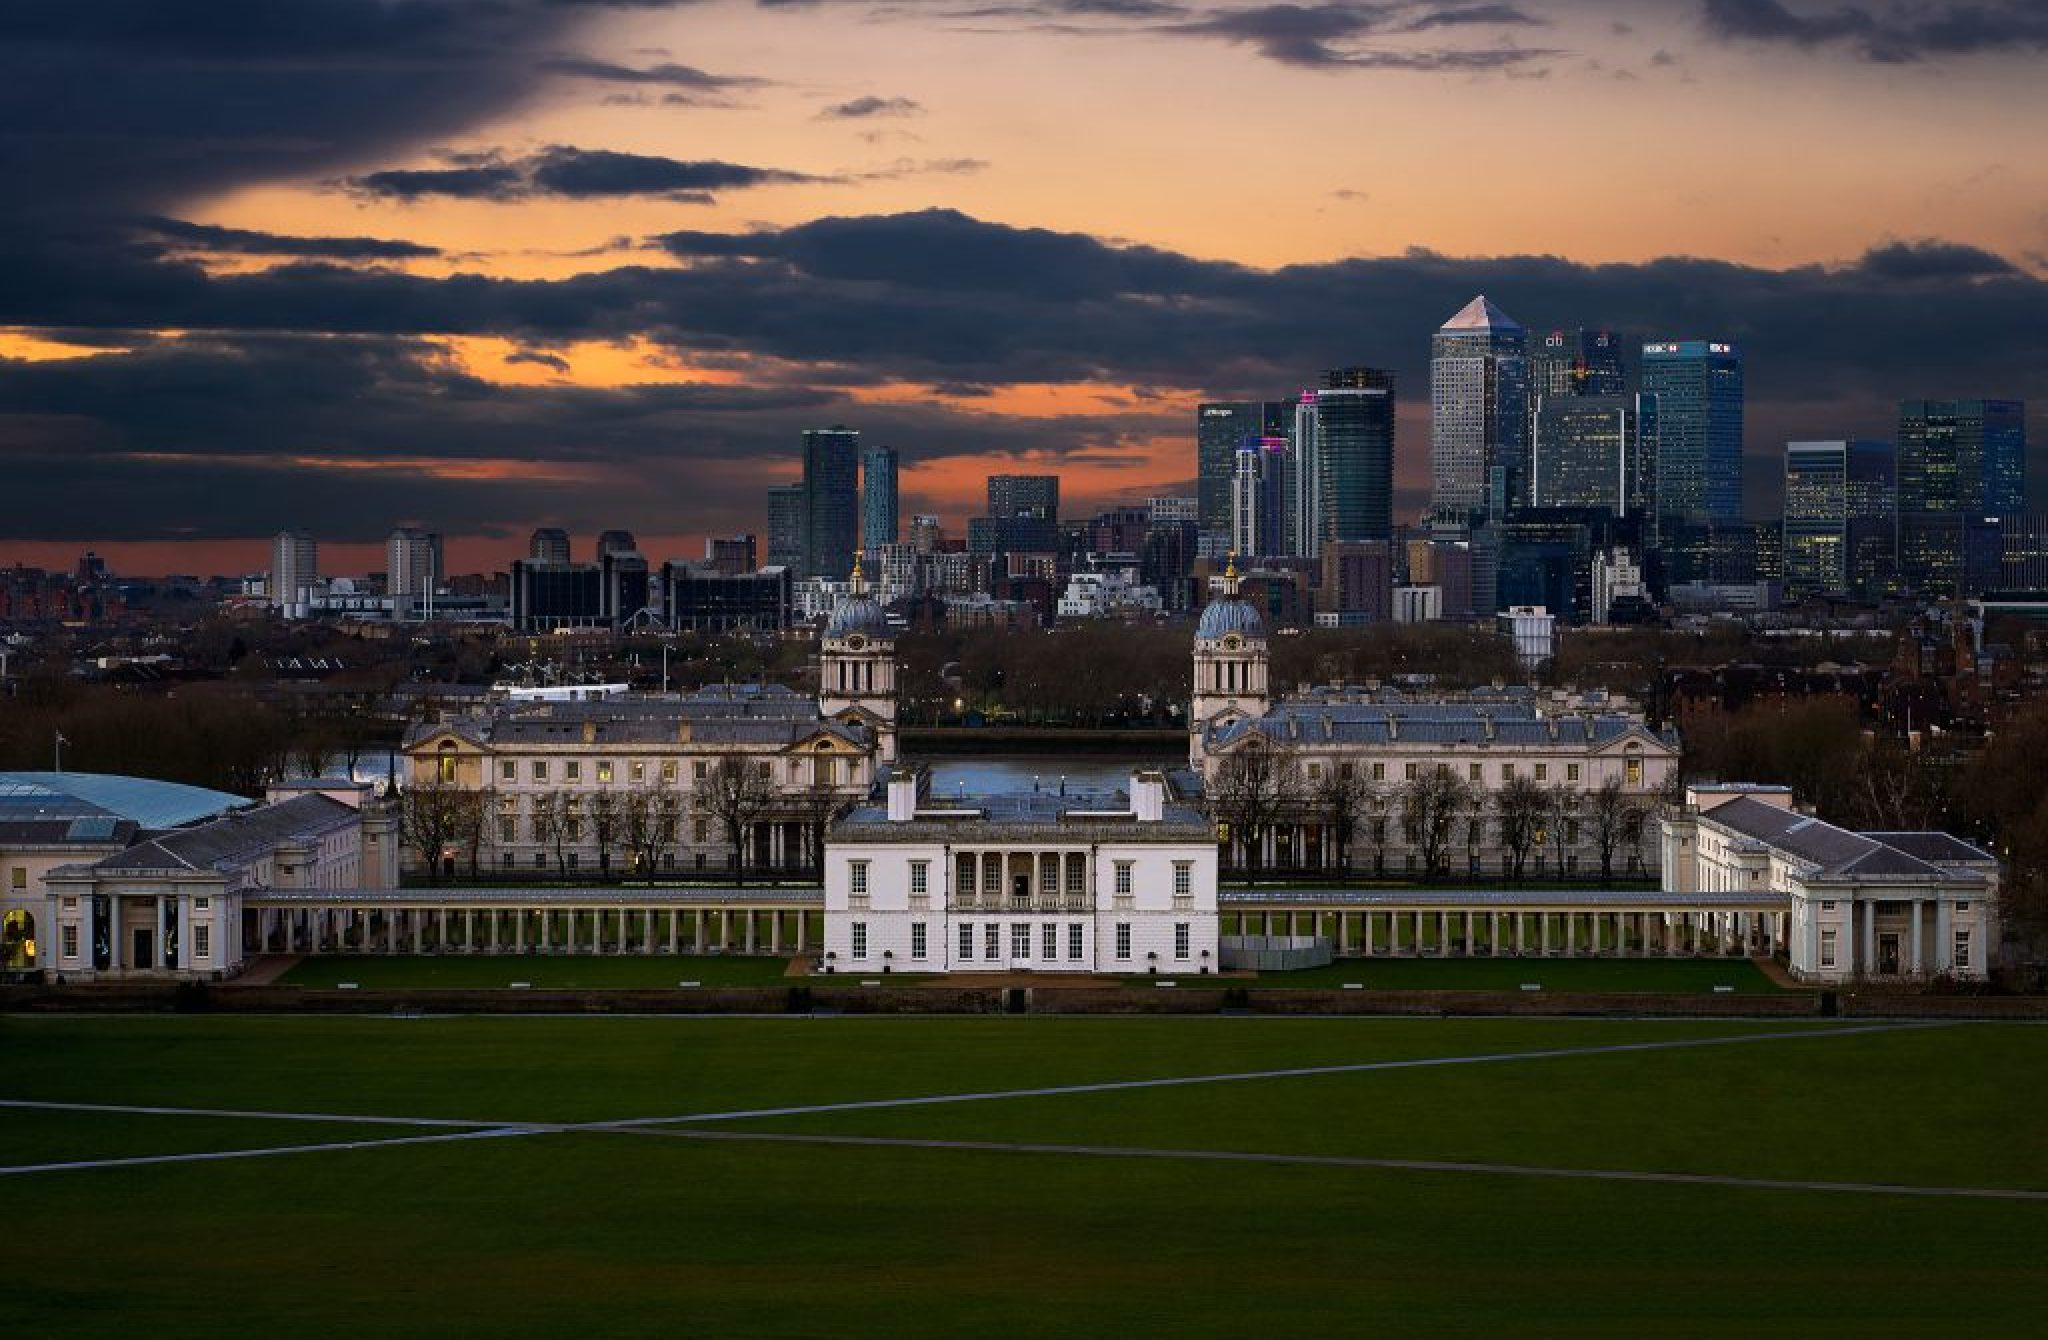 10 Best Spots in London to Photograph